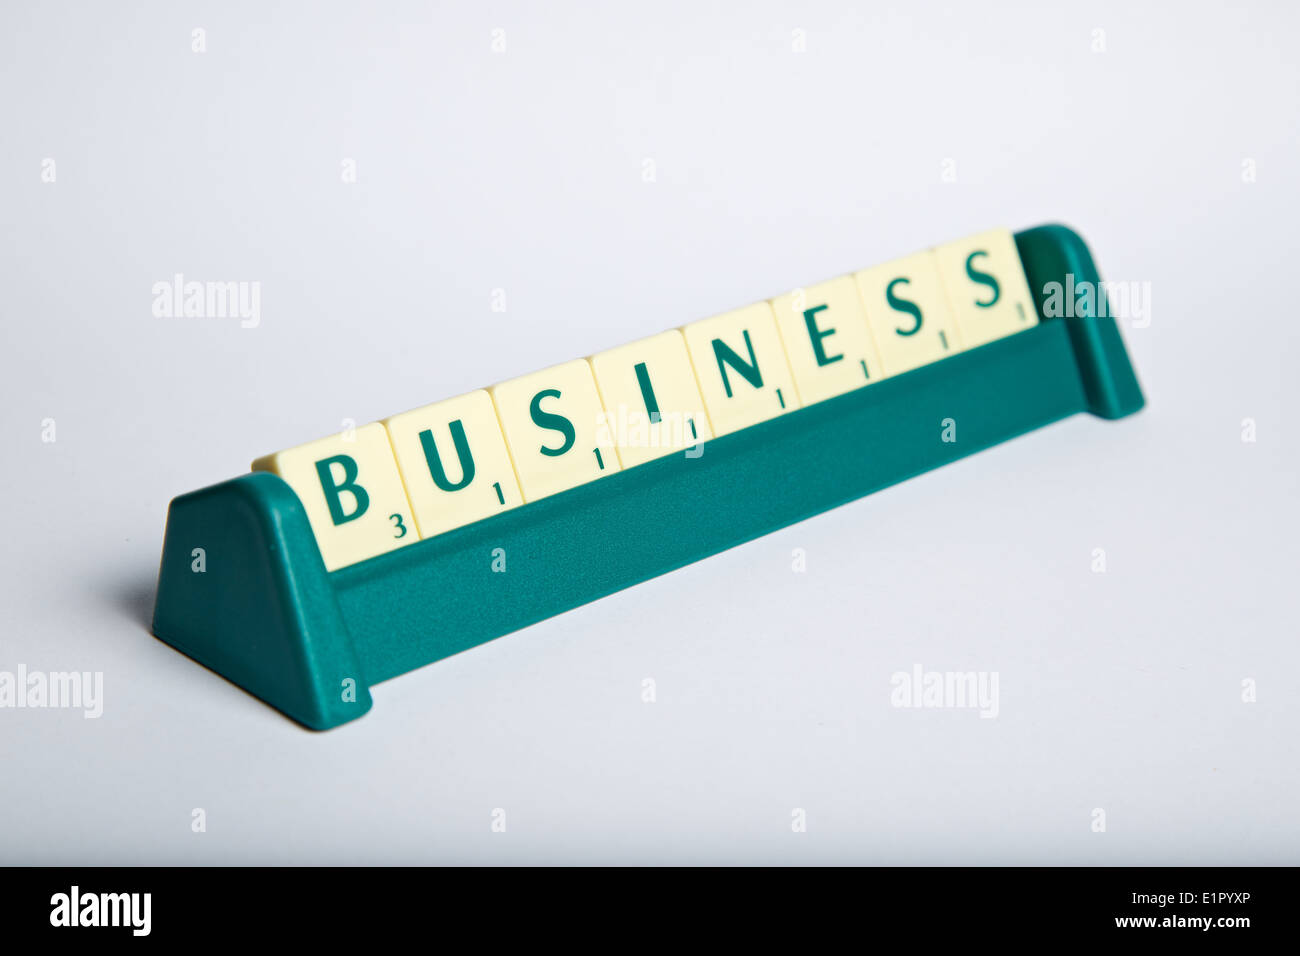 https www alamy com the word business in scrabble letters on a letter rack image69960990 html